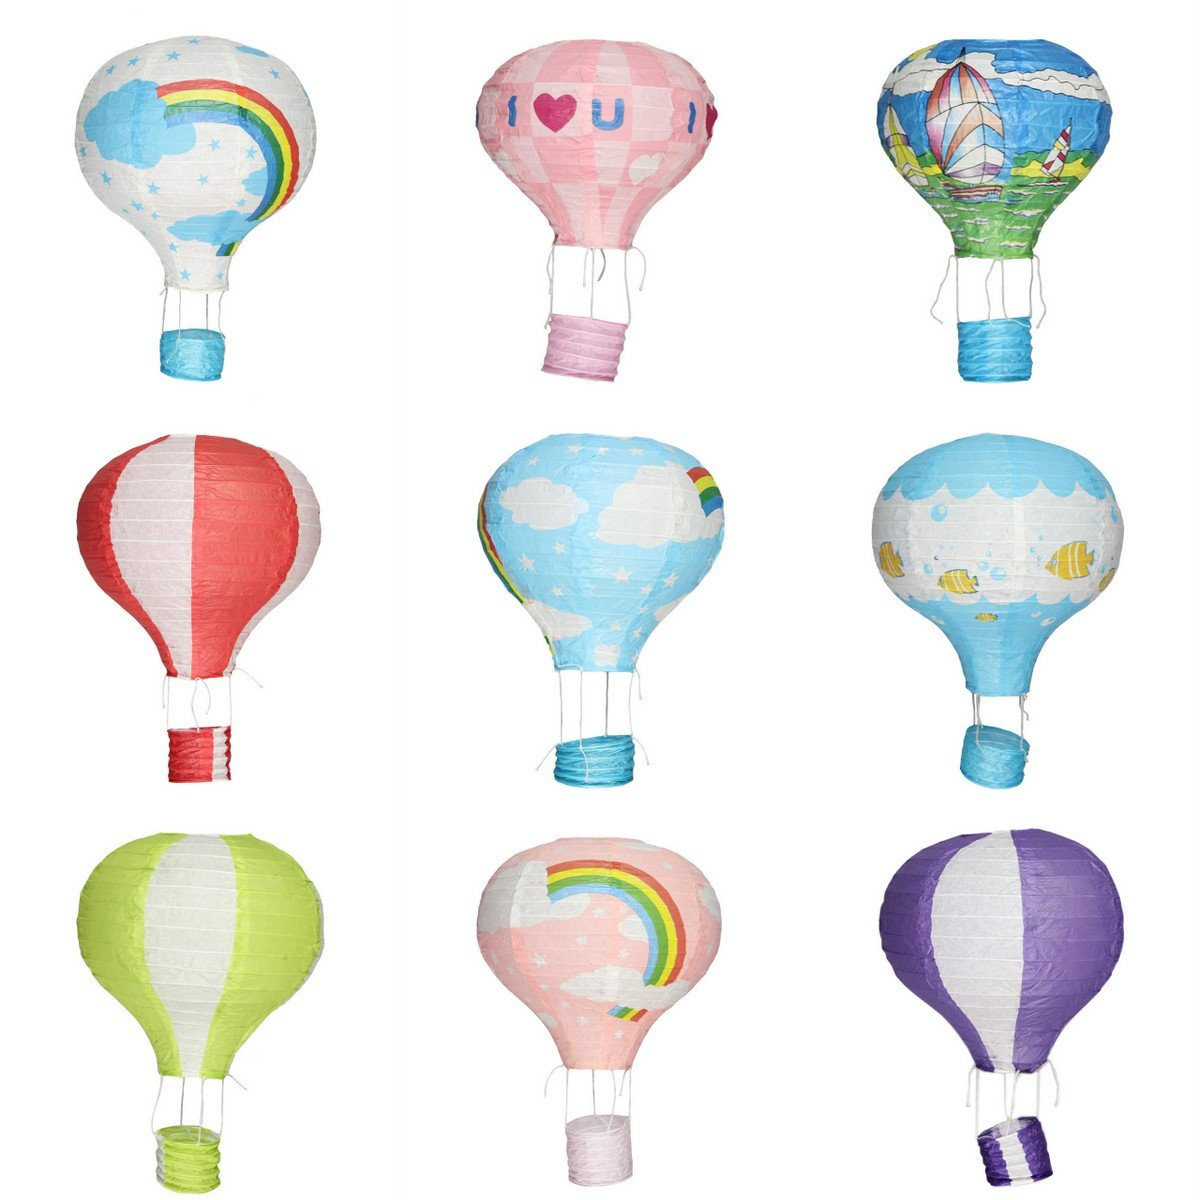 YueLian Wedding Hallowmas Xmas Party Home Decorations Hot Air Balloon Paper Lanterns (25cm, 2)